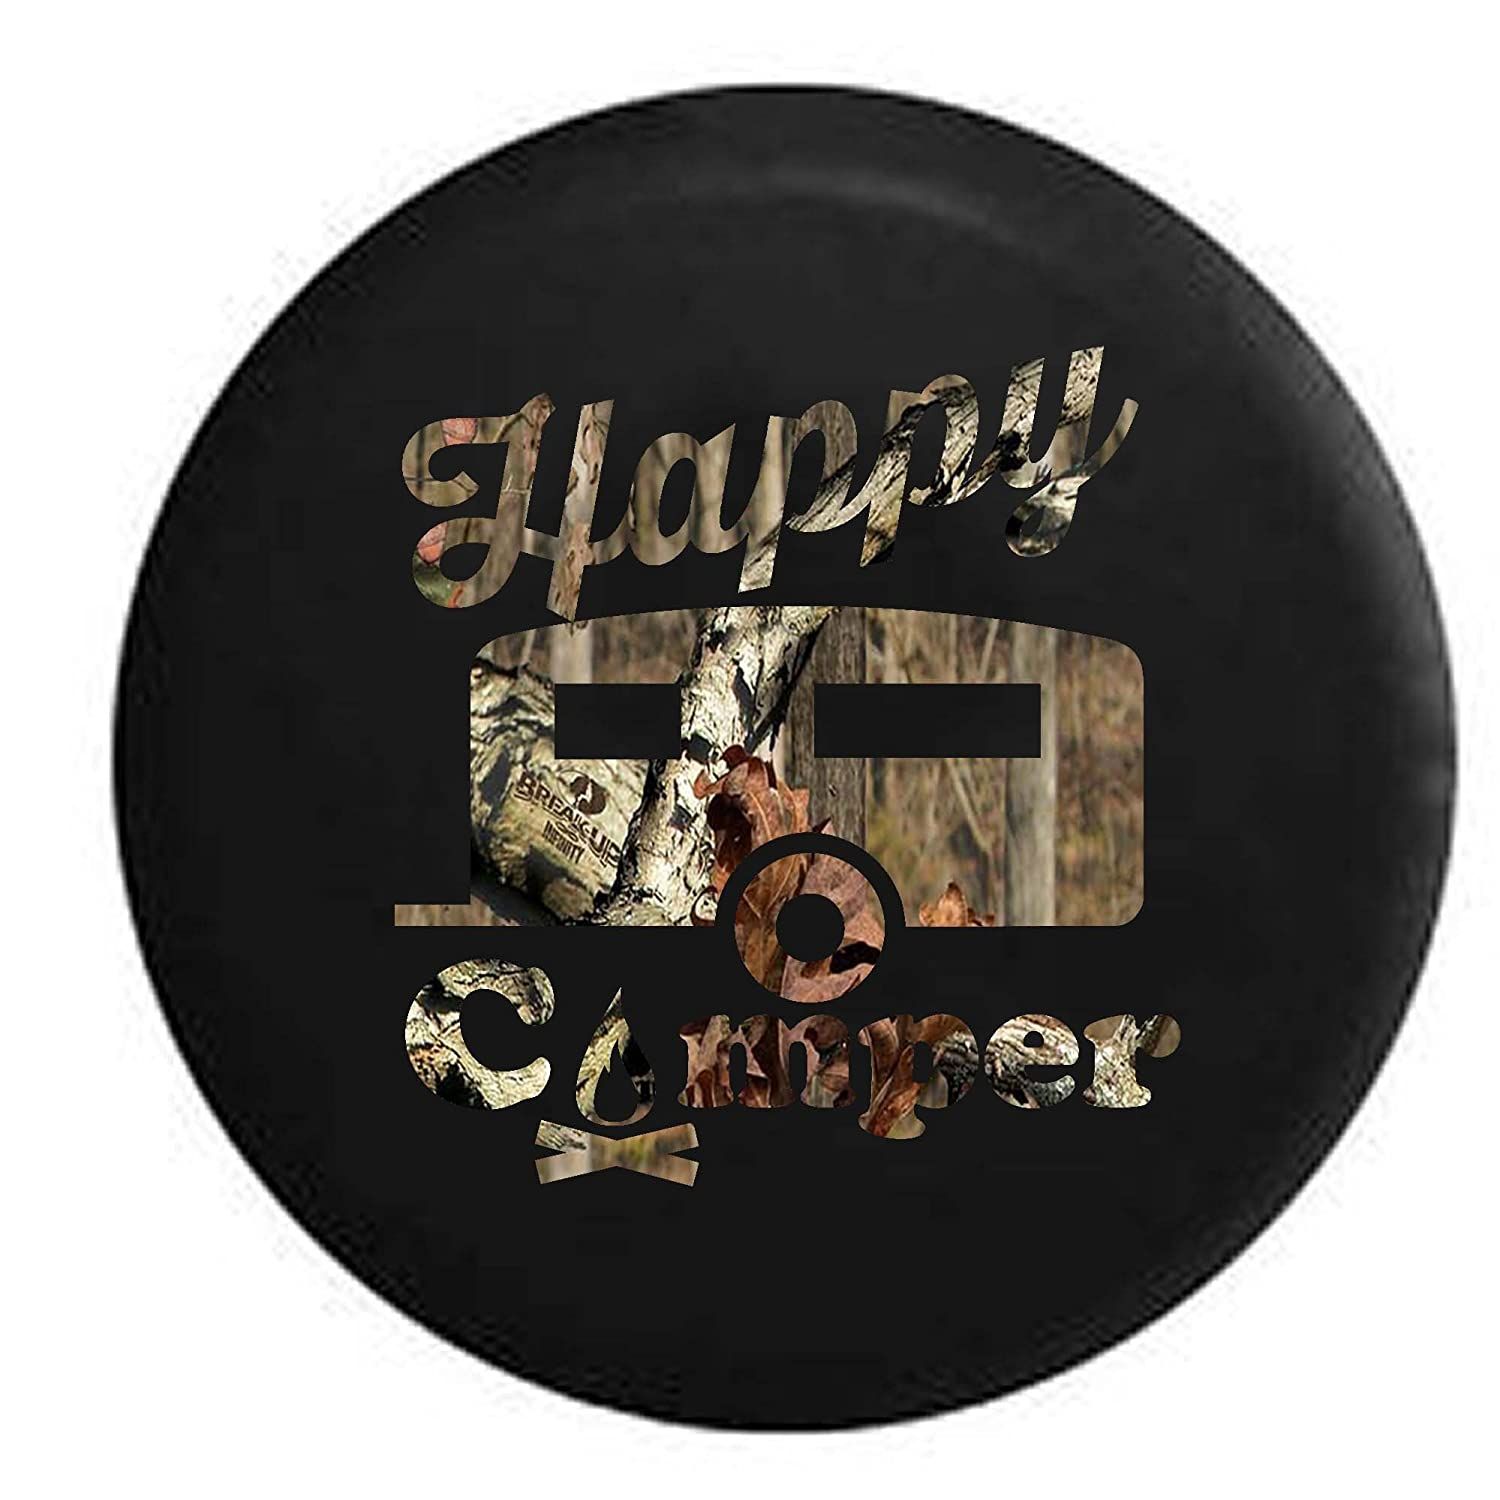 Pike Happy Camper Camp Fire RV Trailer Spare Tire Cover OEM Vinyl Black 27.5 in Pike Outdoors